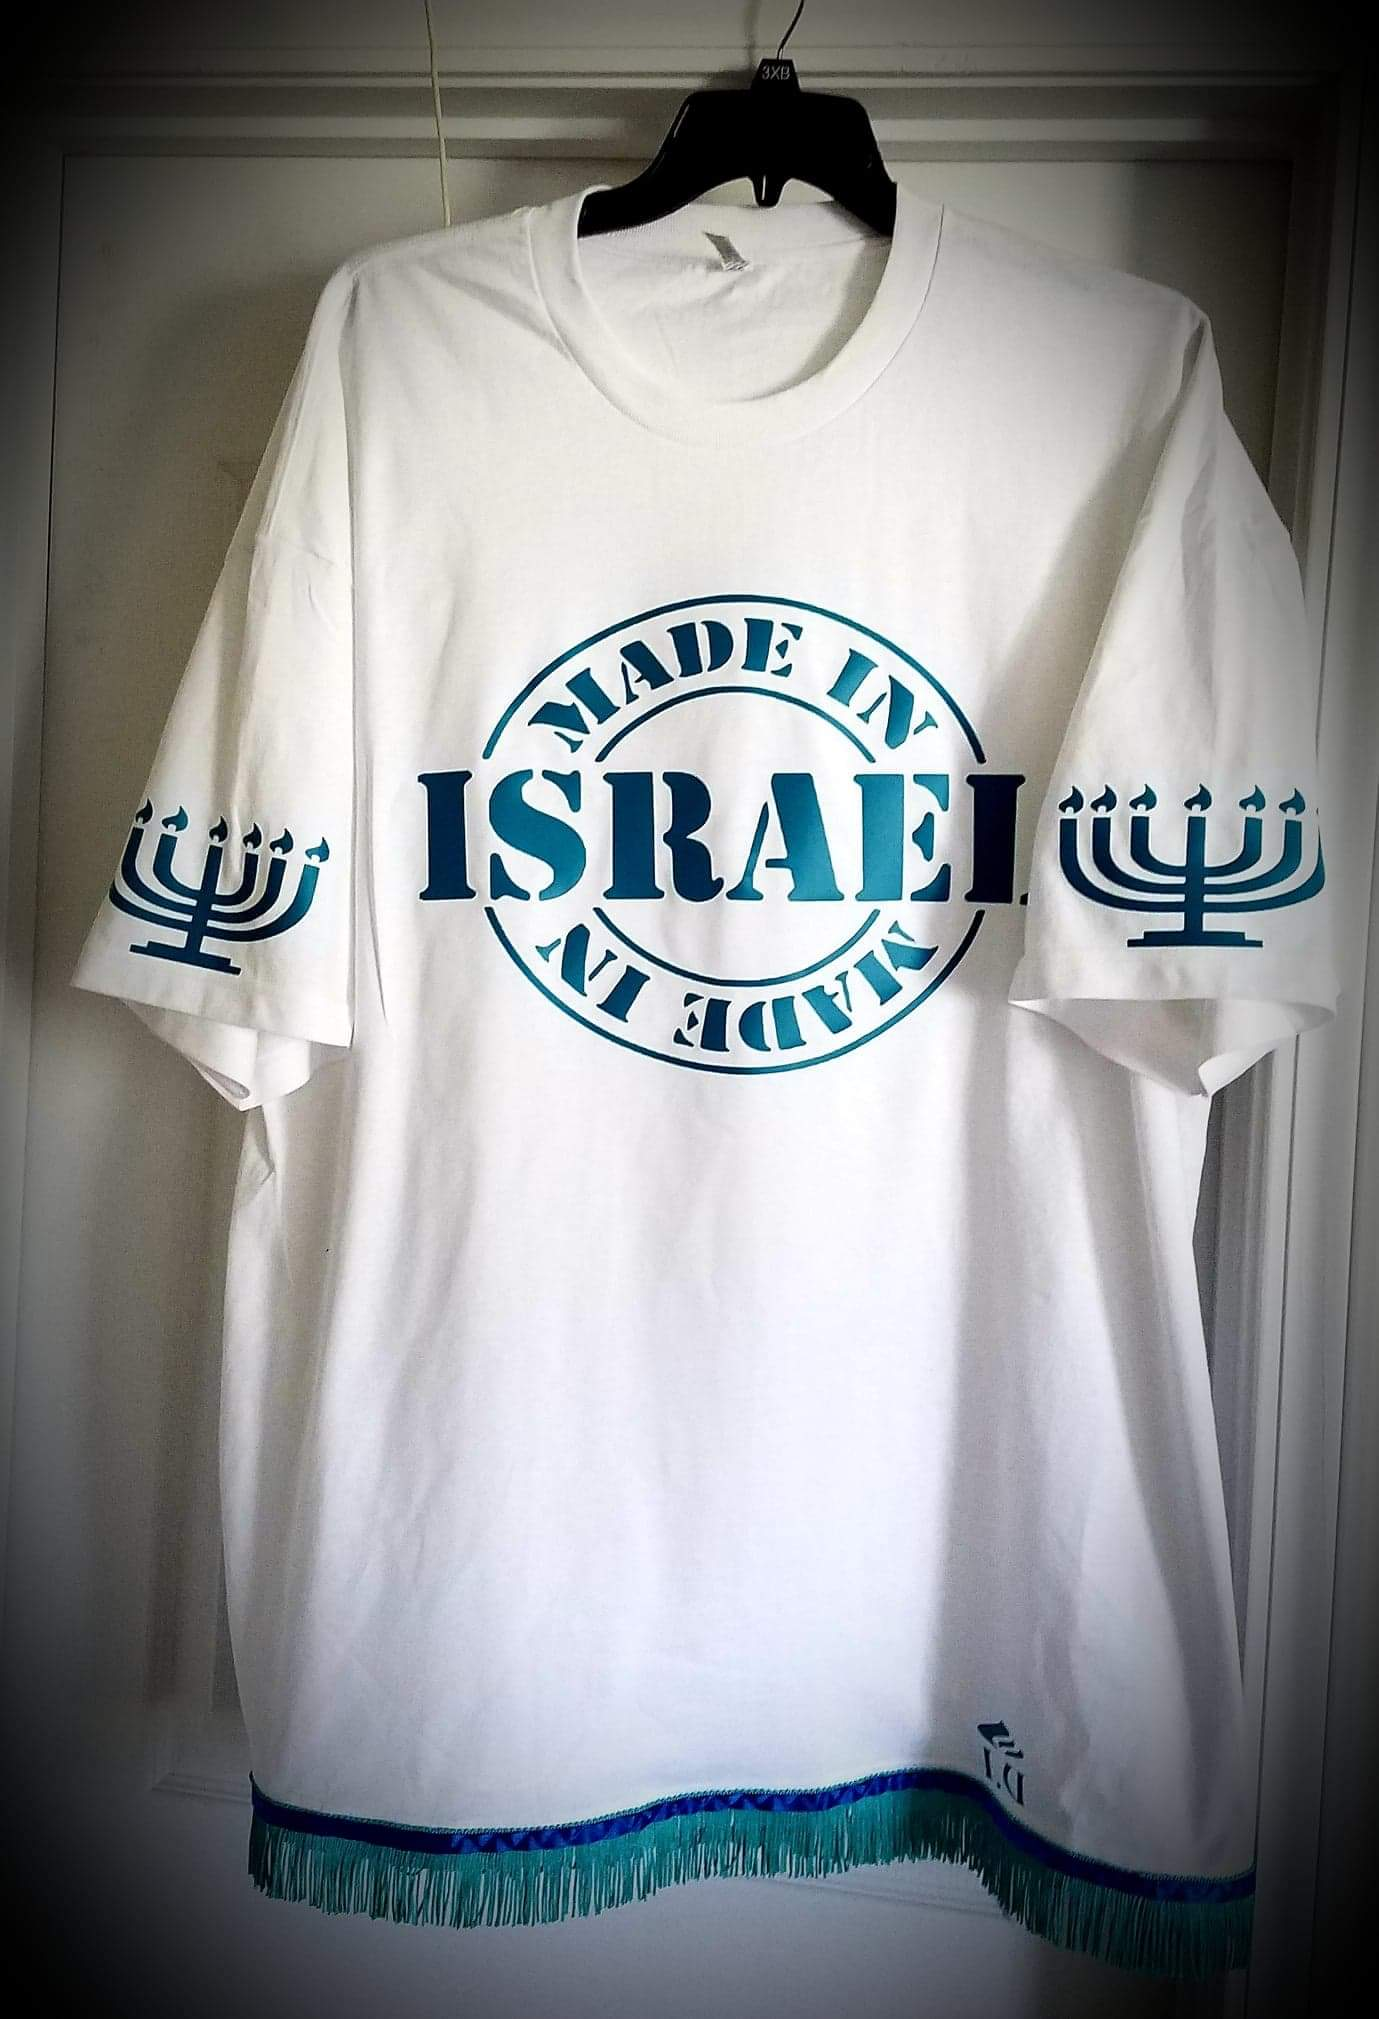 MADE IN ISRAEL T-SHIRT